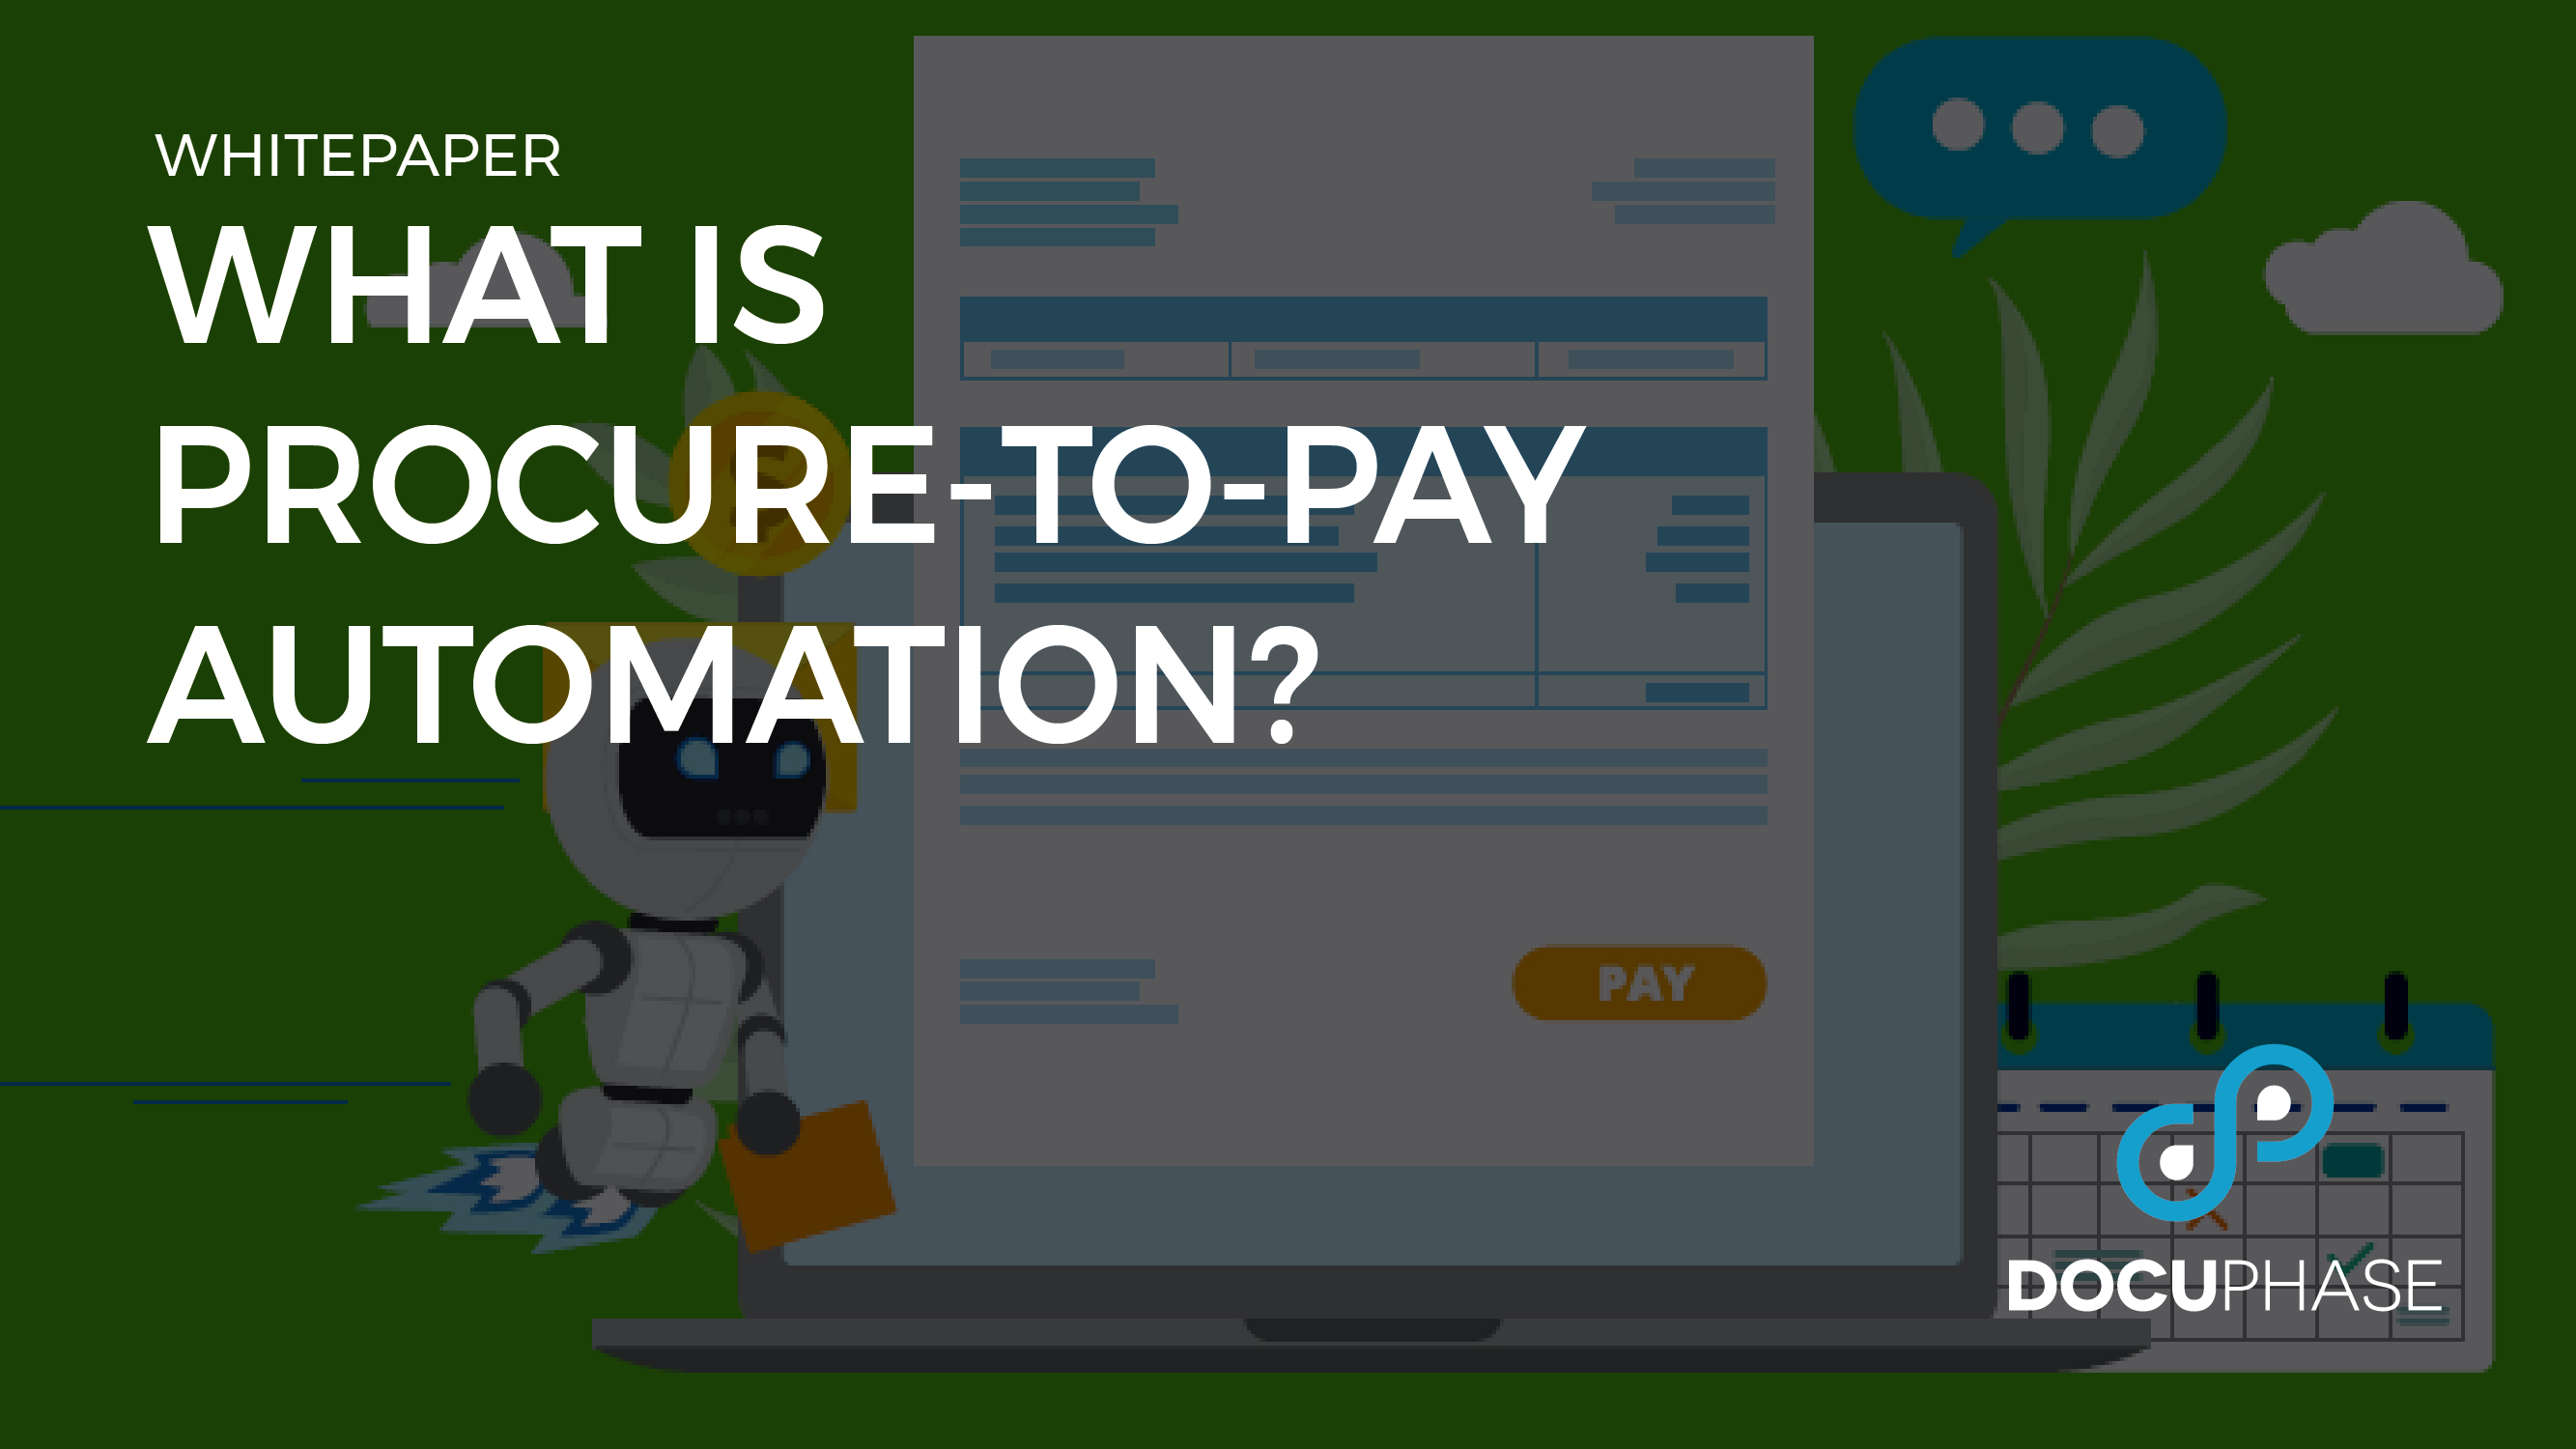 What is Procure-to-Pay Automation?